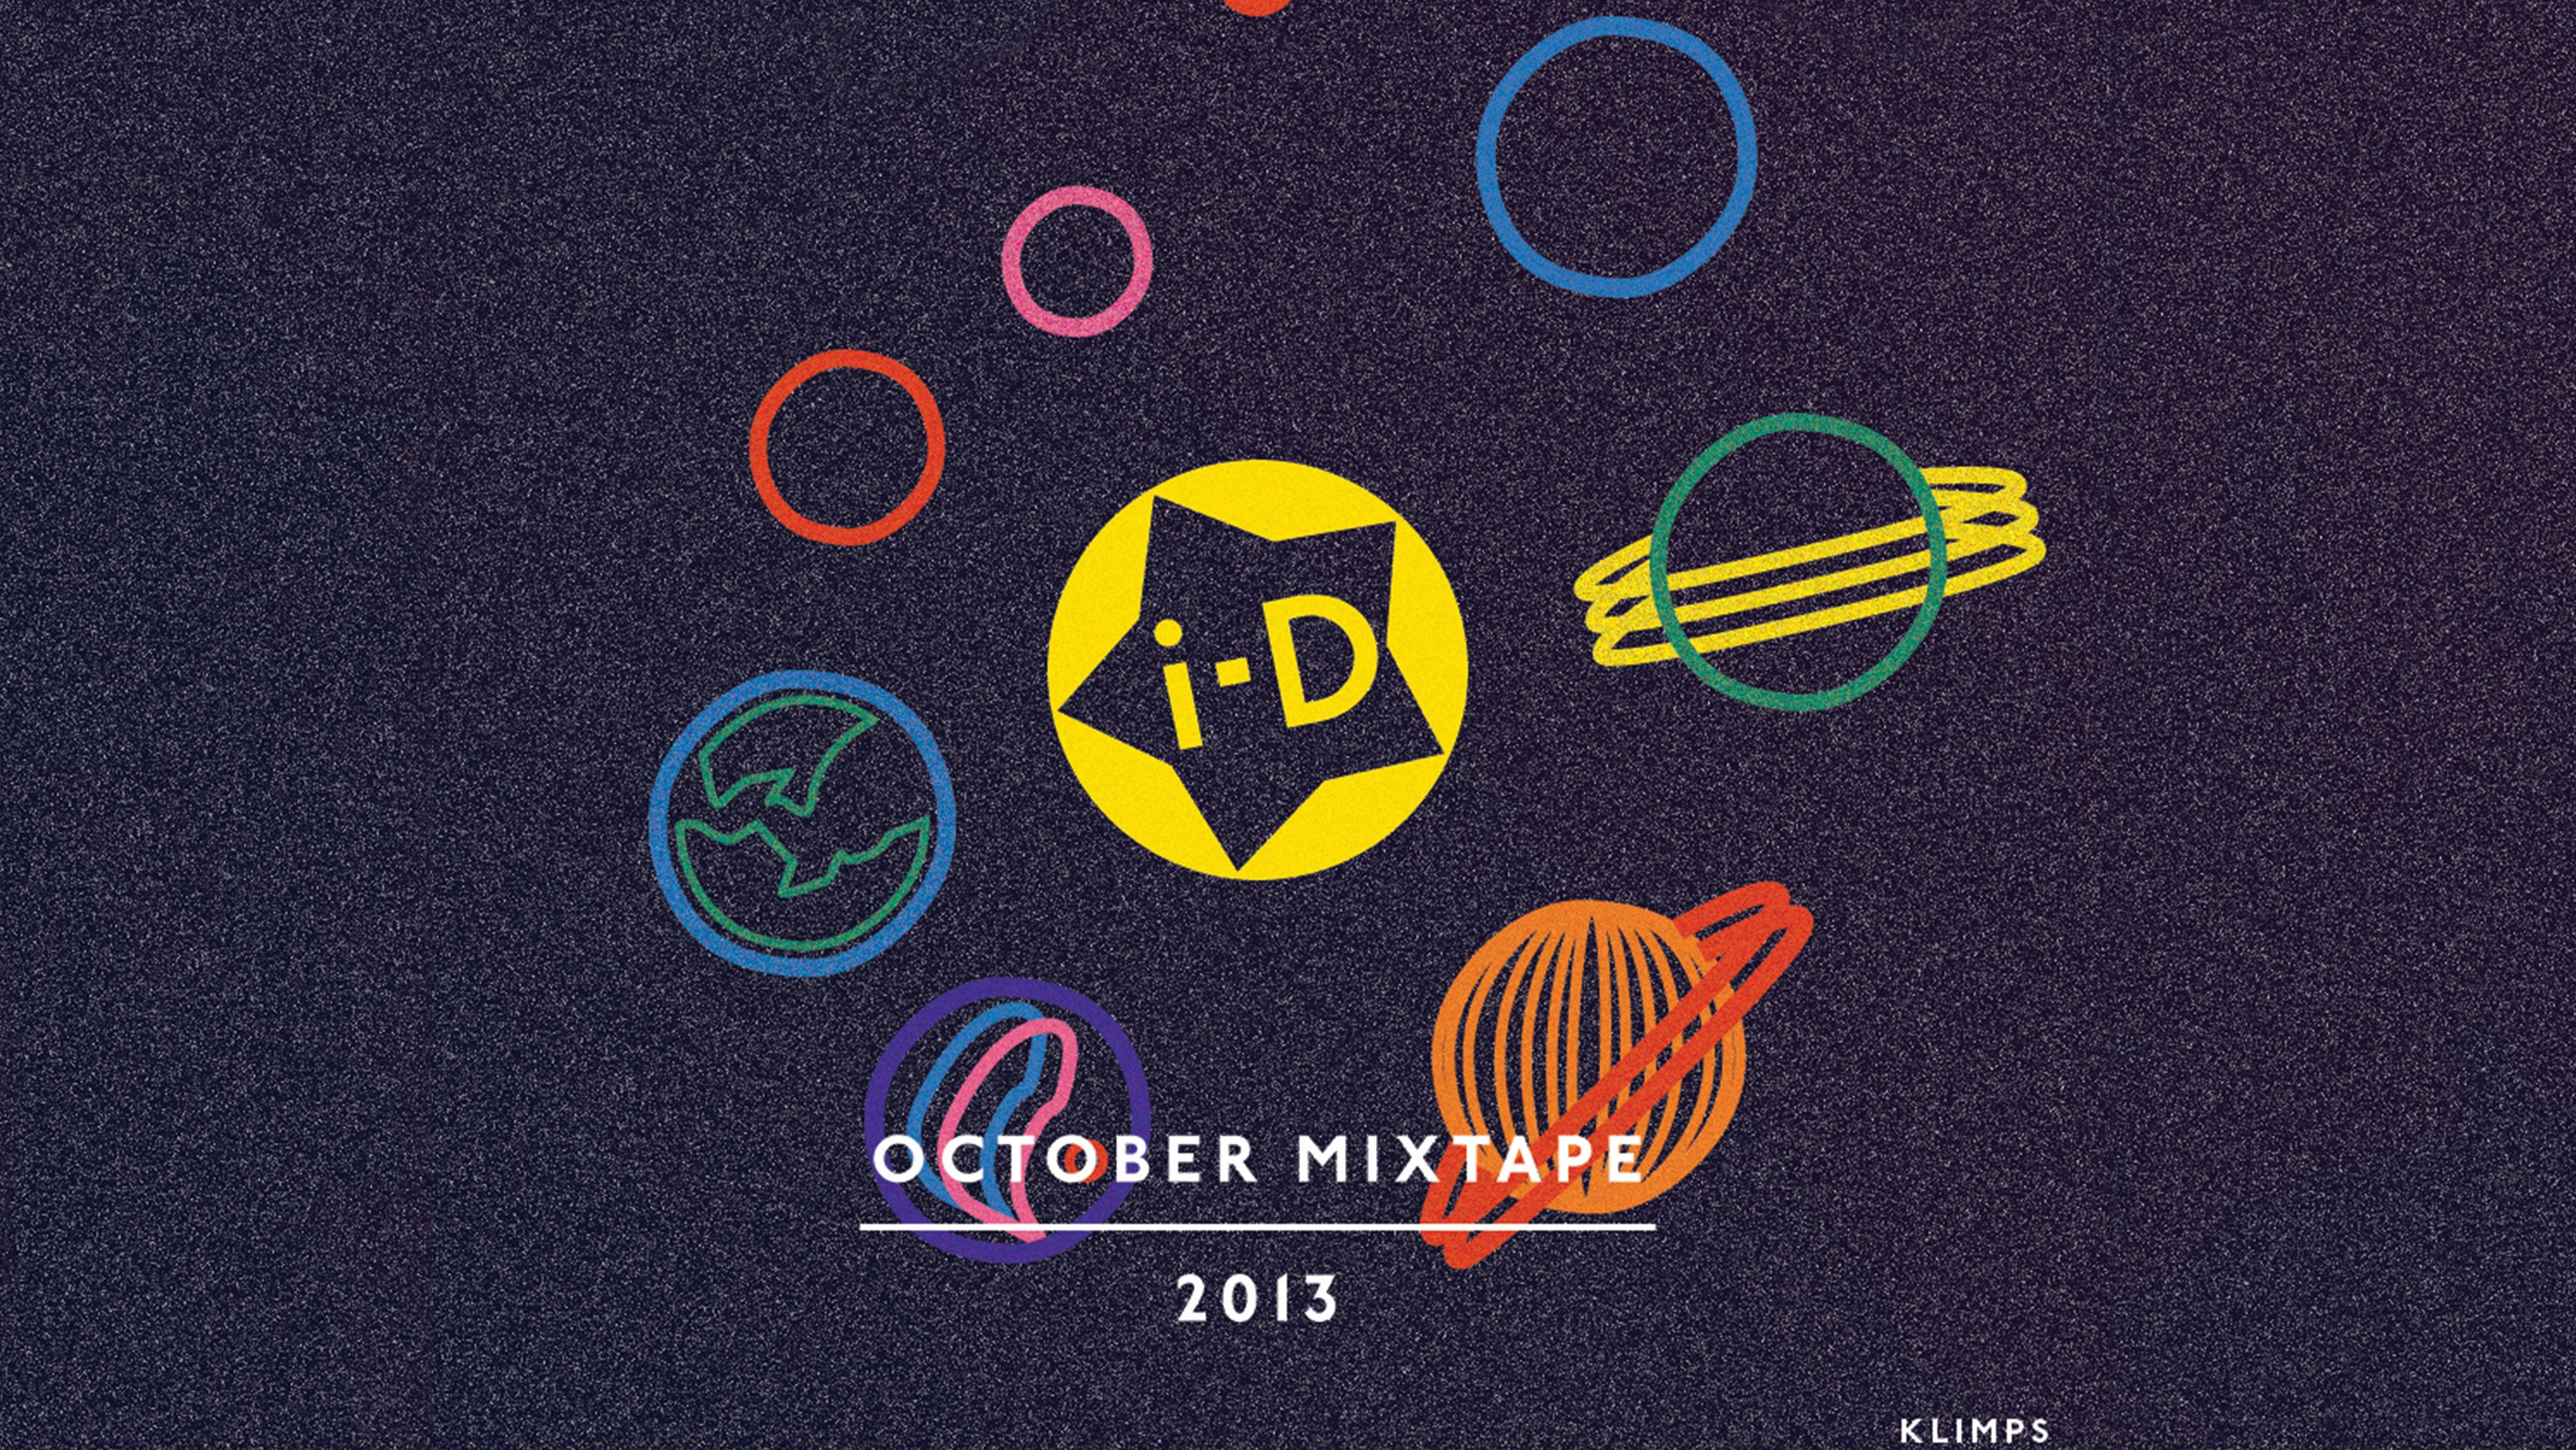 i-D October mixtape 2013